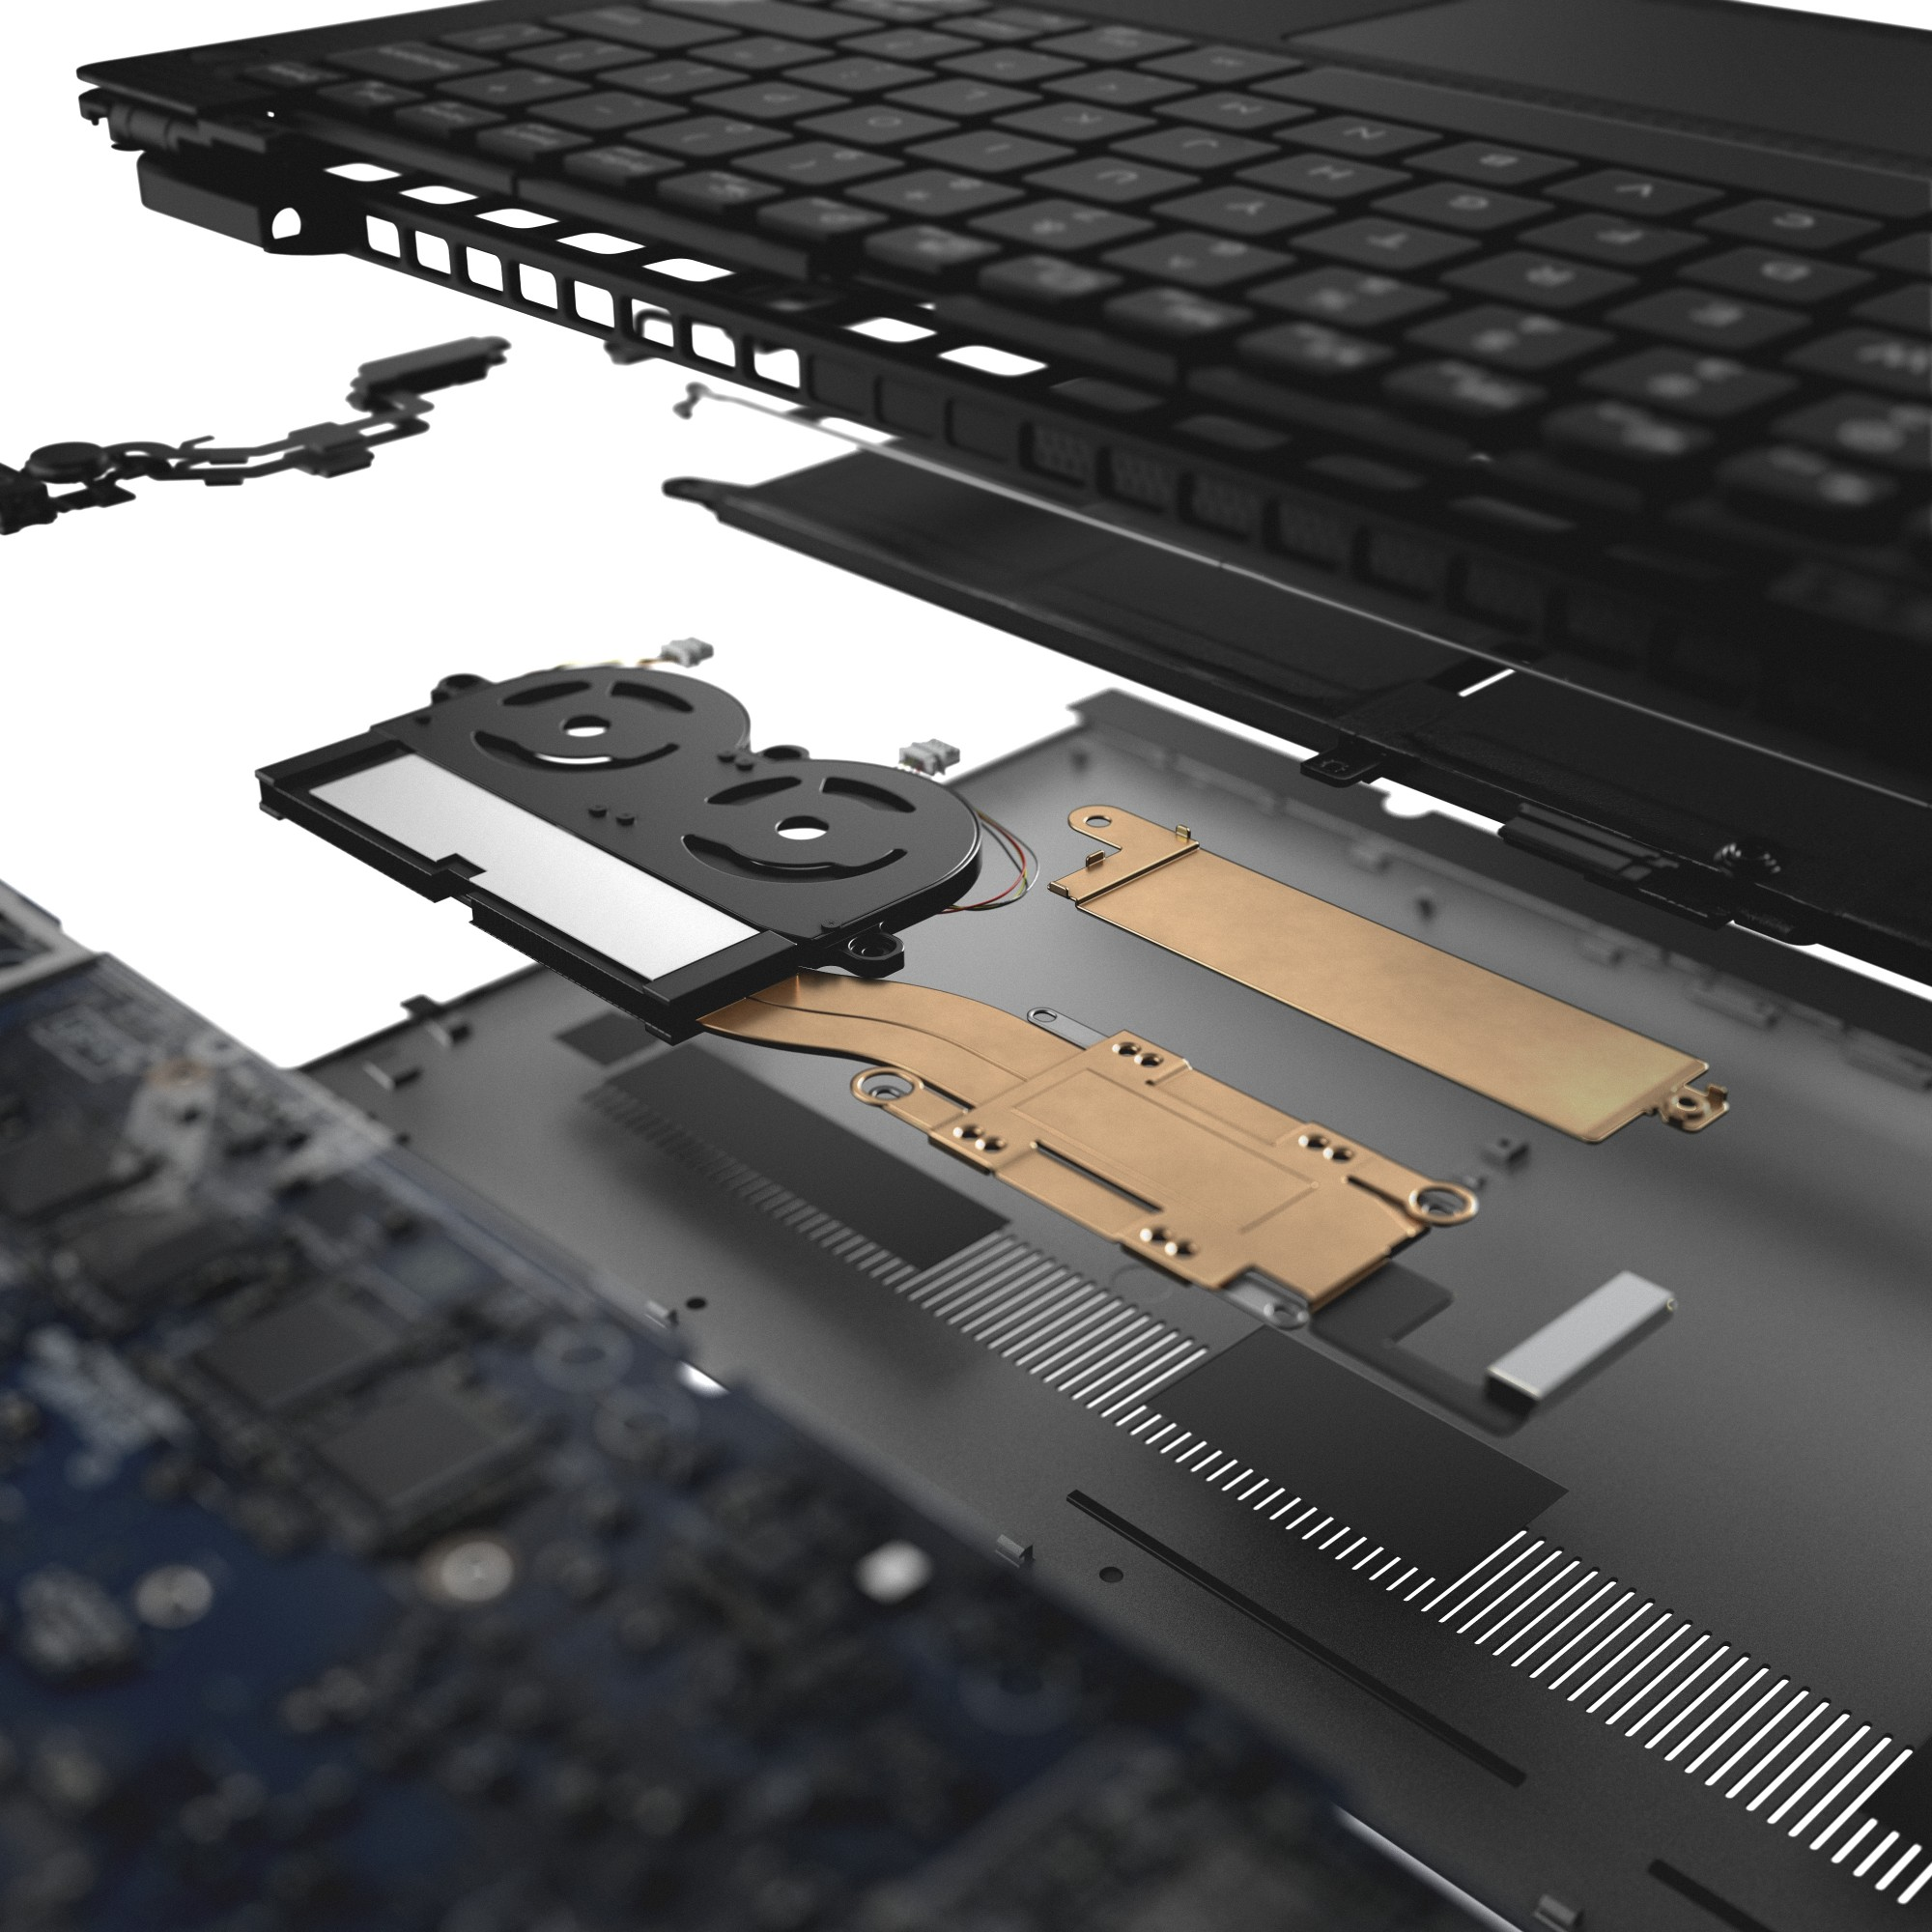 Image result for Cooler than ever: The XPS 13 is the first laptop built with GORE™ Thermal Insulation, which provides thermal conductivity levels lower than air in a thin, flexible format. While the Gore insulation directs heat out of the device, dual fans and heat pipes further lower the temperature of your XPS, enabling greater performance in a thinner form factor.